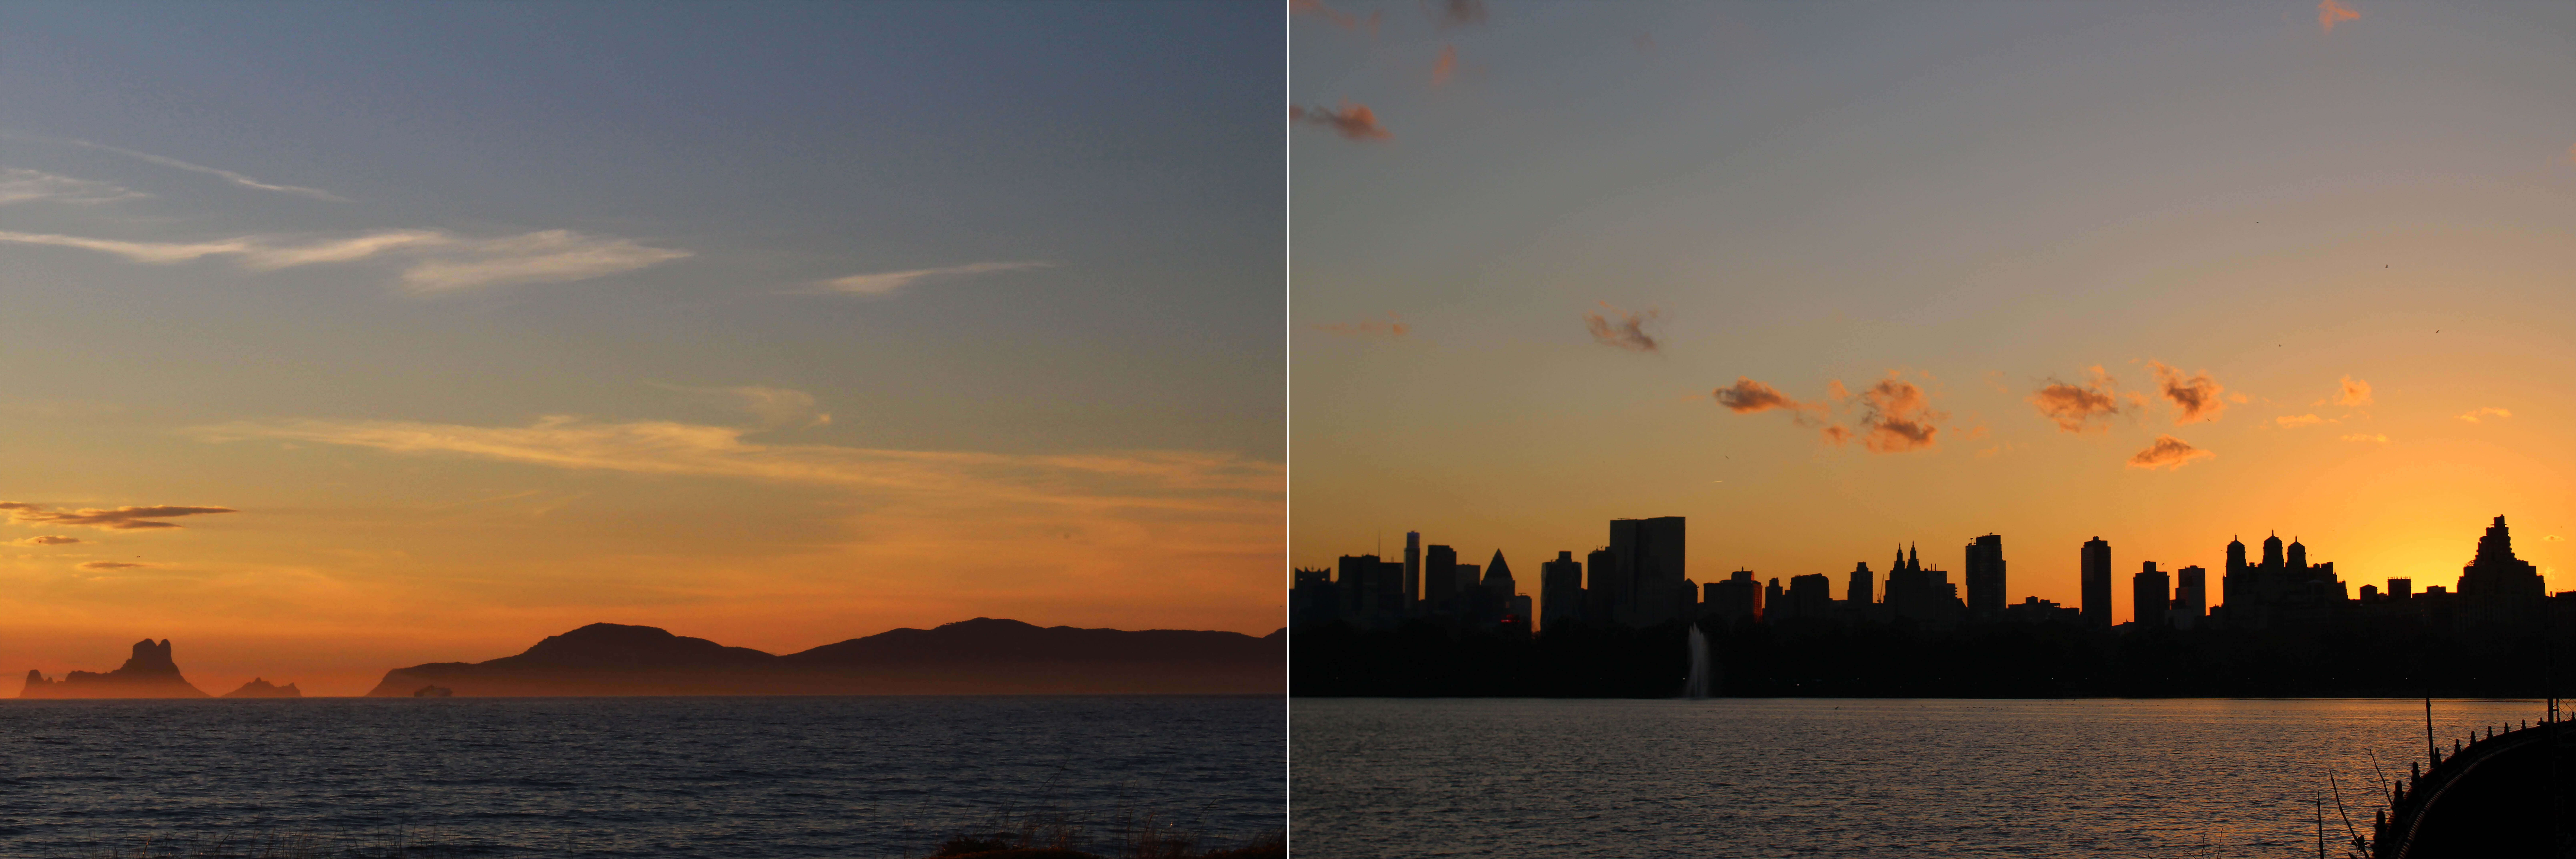 Papercut Sunset artwork showing the dark silhouette of Ibiza seen from Formentera just after sunset and comparing it to the dark skyline of Manhattan, New York right after sunset as well. Part of the Formenhattan exhibition.